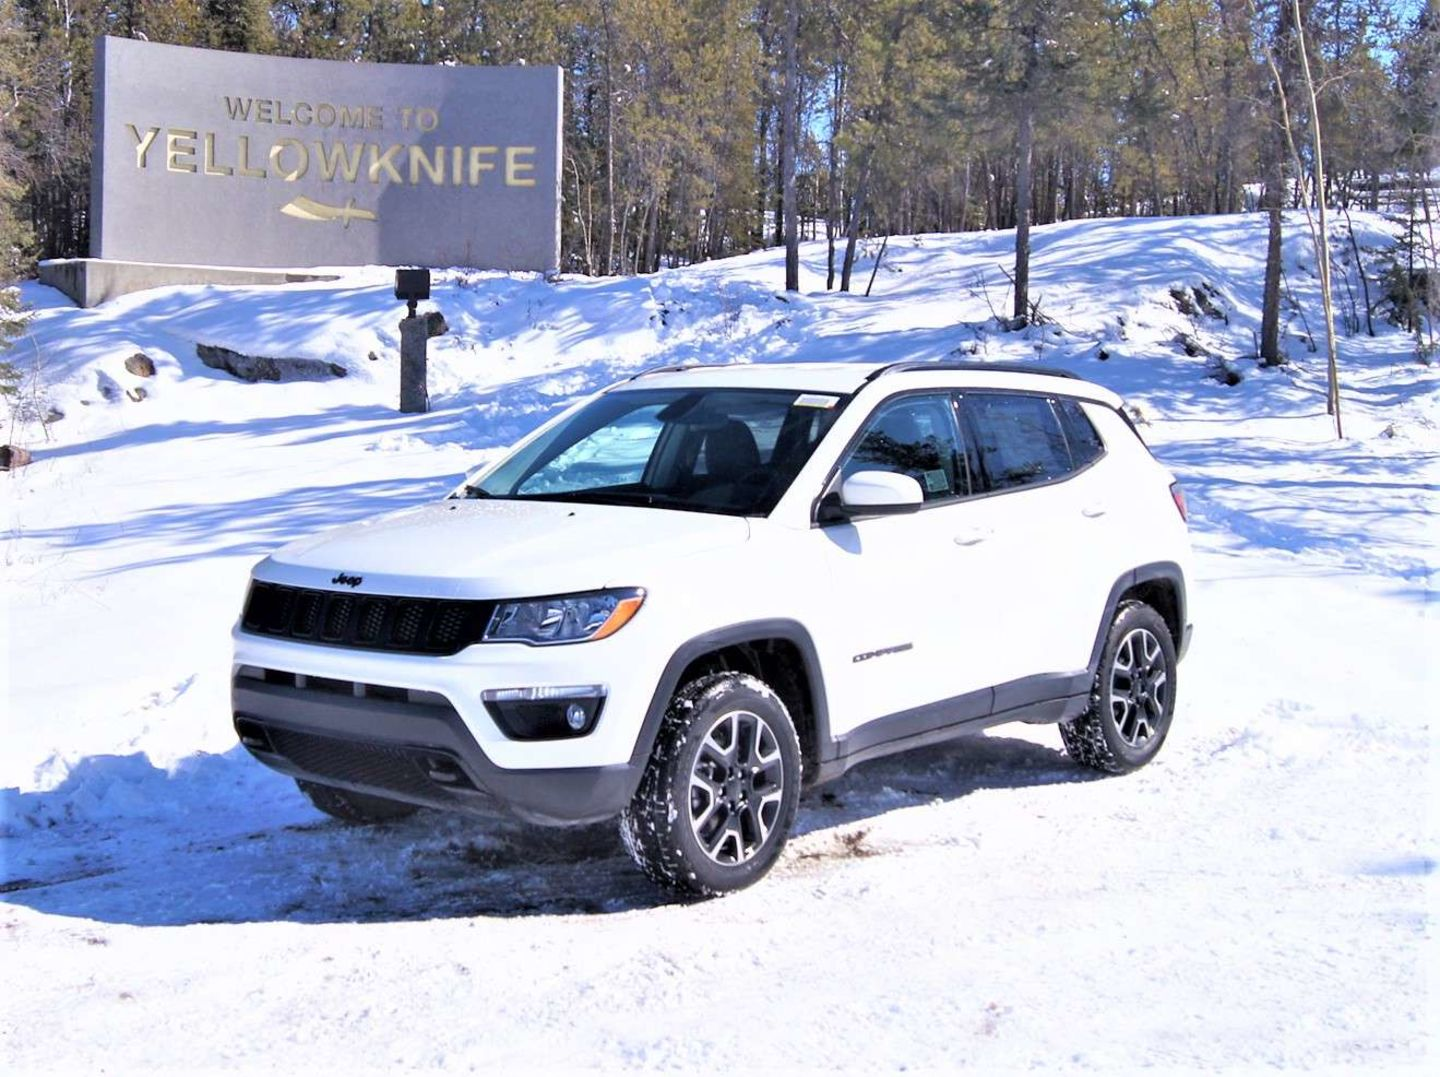 2019 Jeep Compass Upland Edition for sale in Yellowknife, Northwest Territories